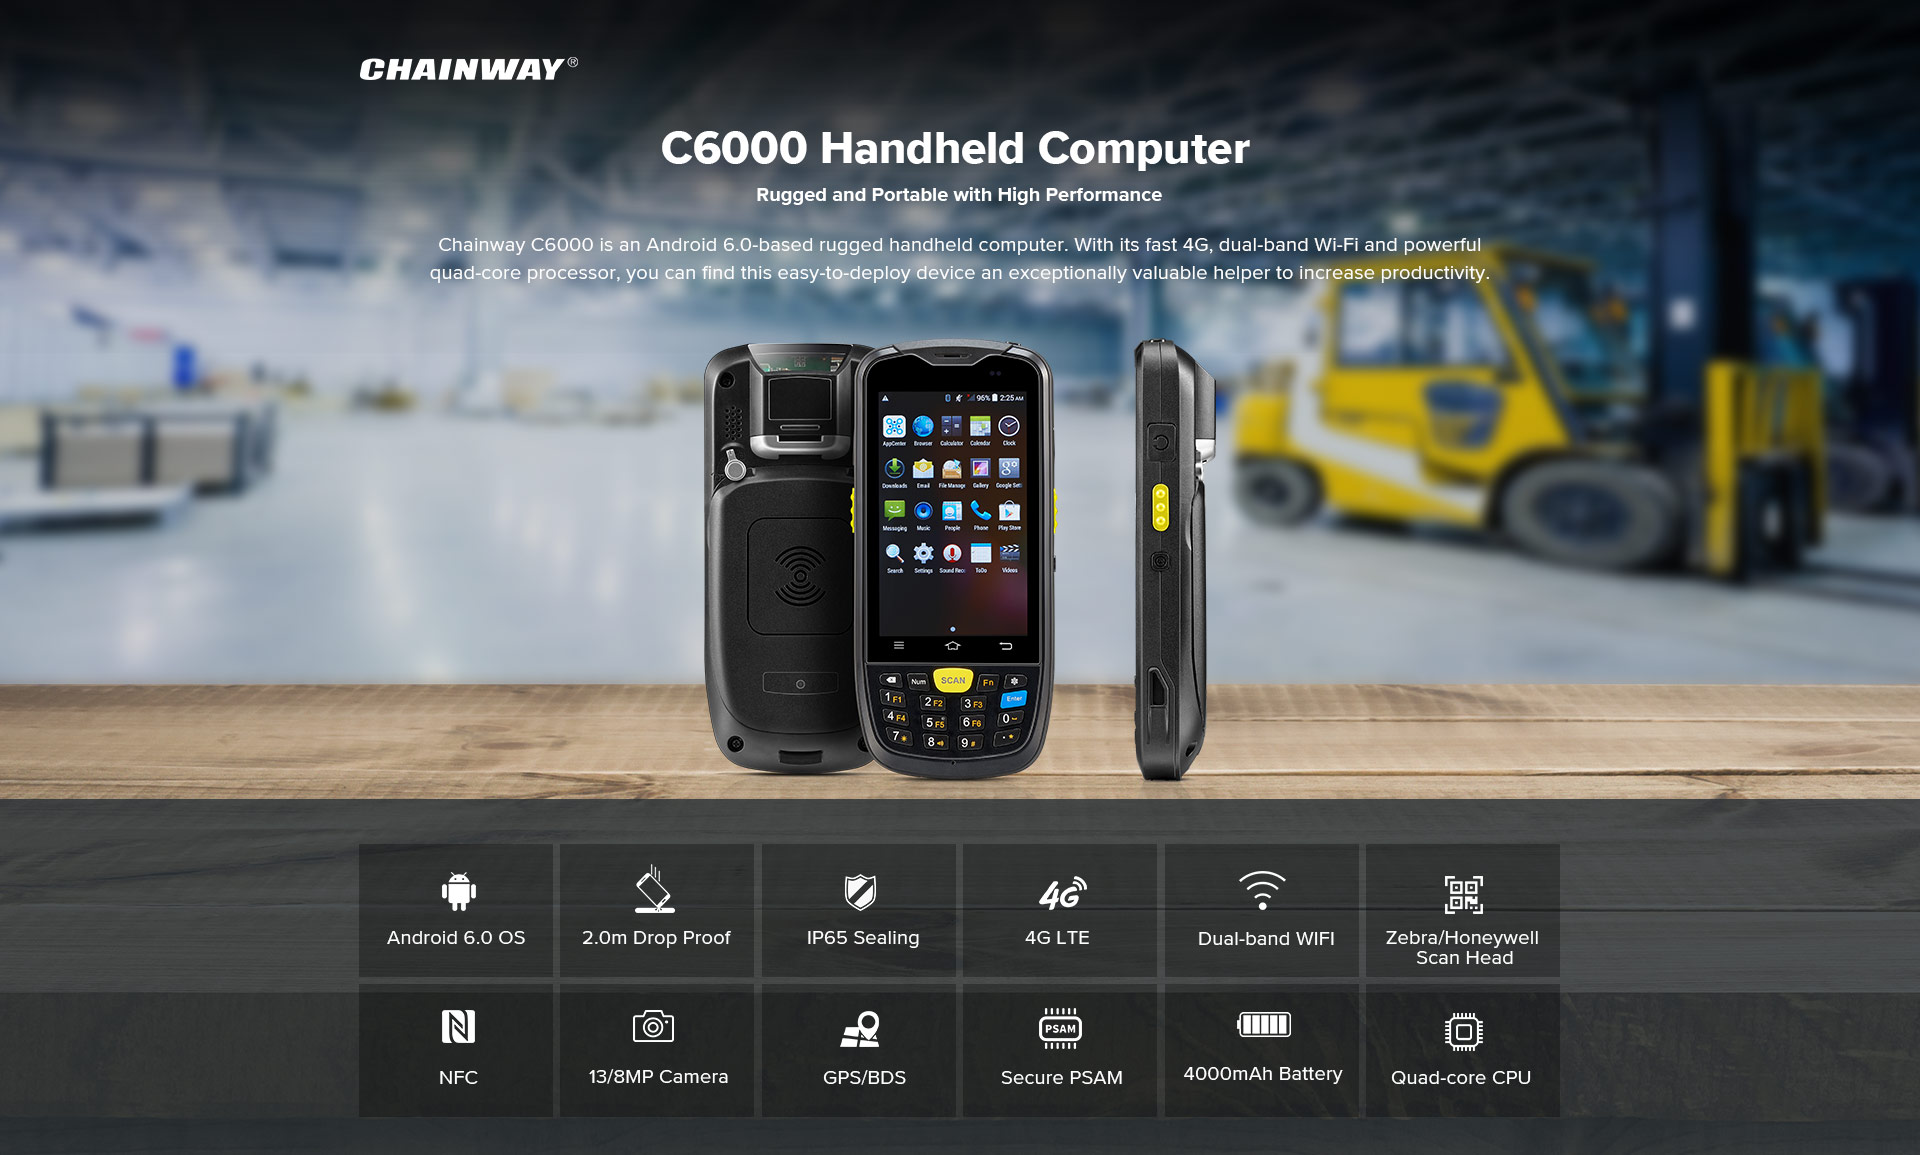 C6000 Rugged Handheld Computer Android - complete feature